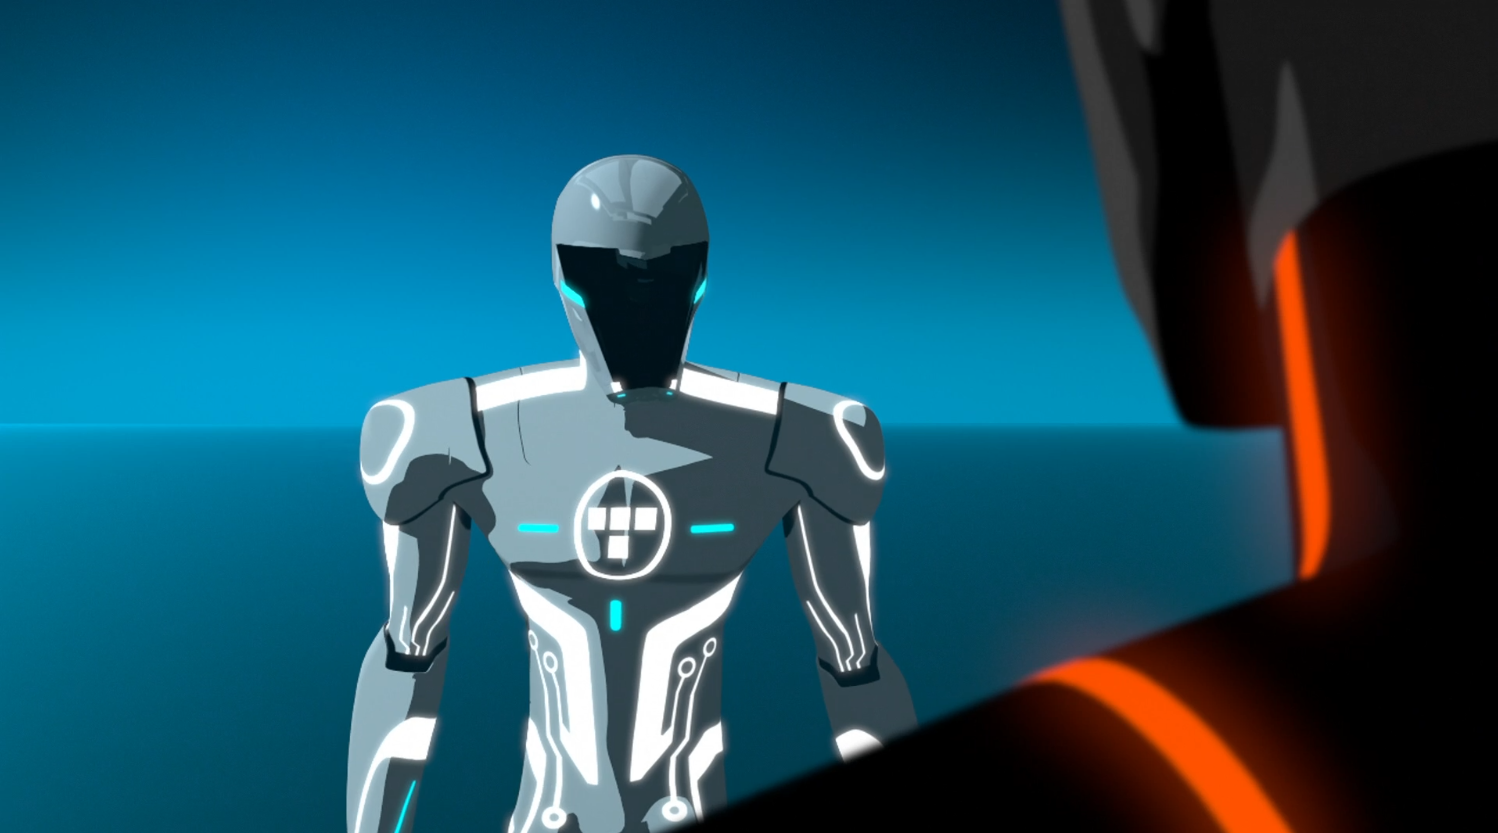 Beck as the Renegade - Terminal - Terminal - Tron: Uprising